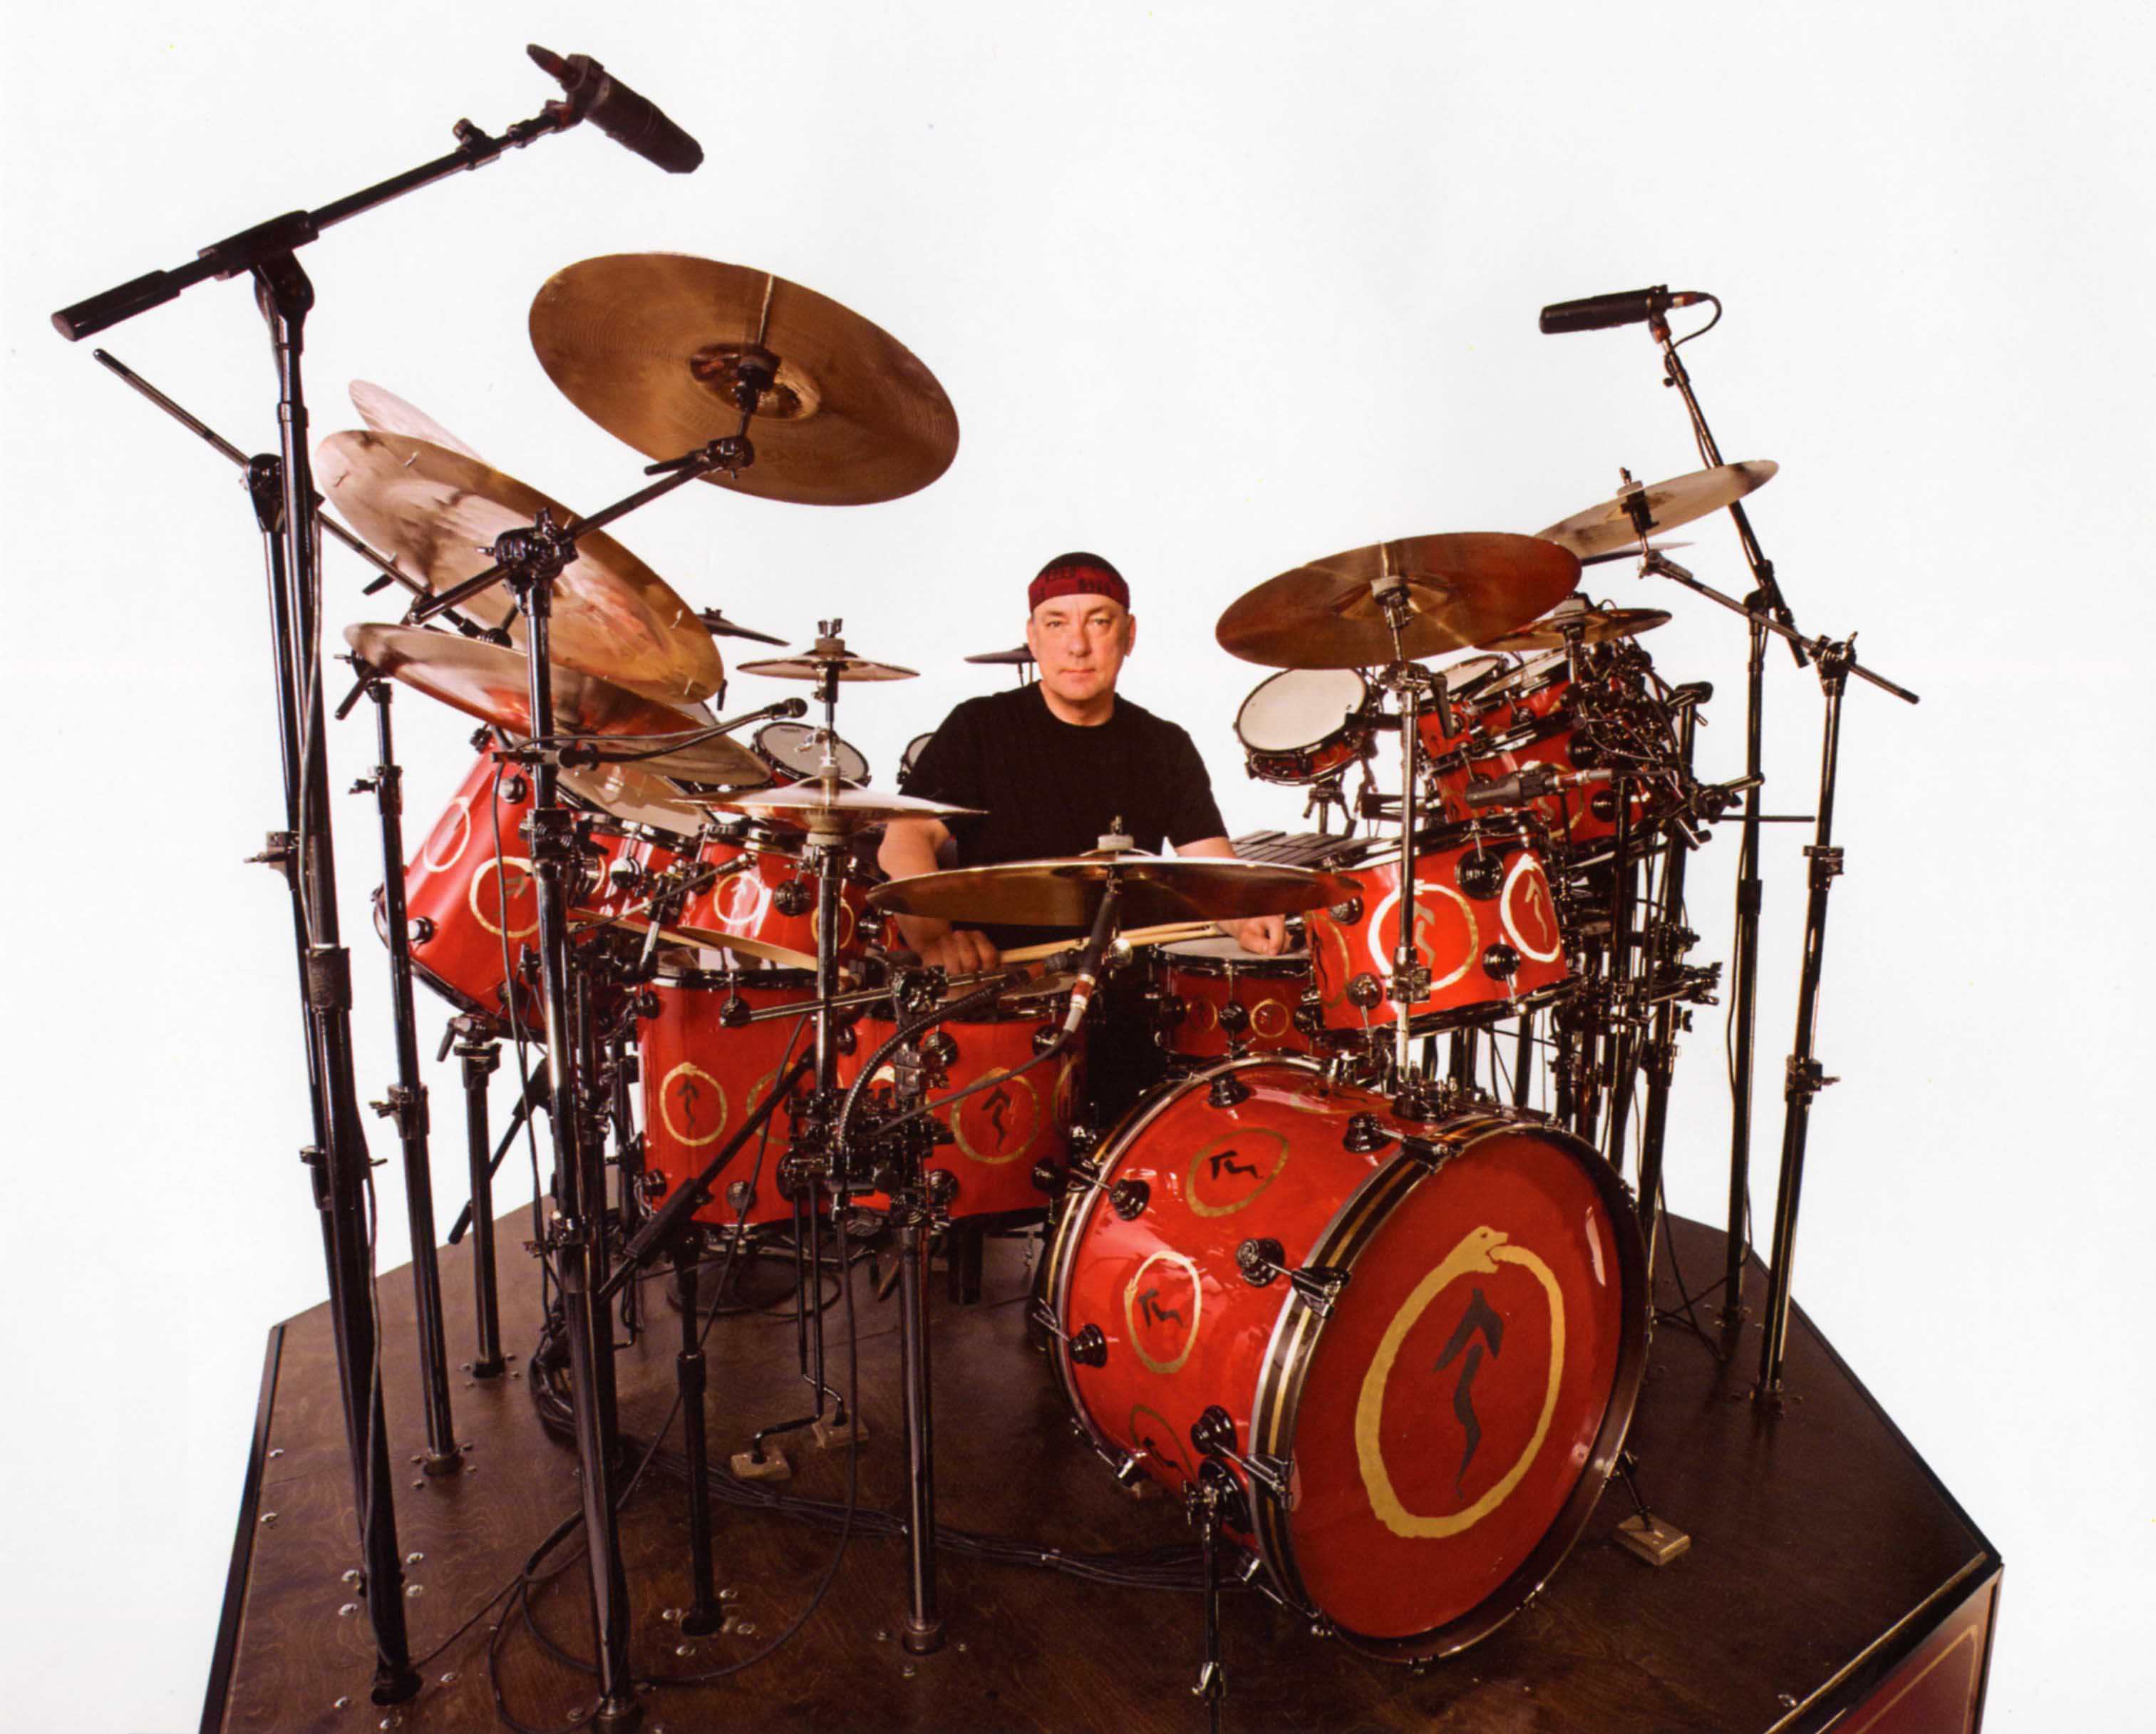 The Complete Kit Includes 12 Drums